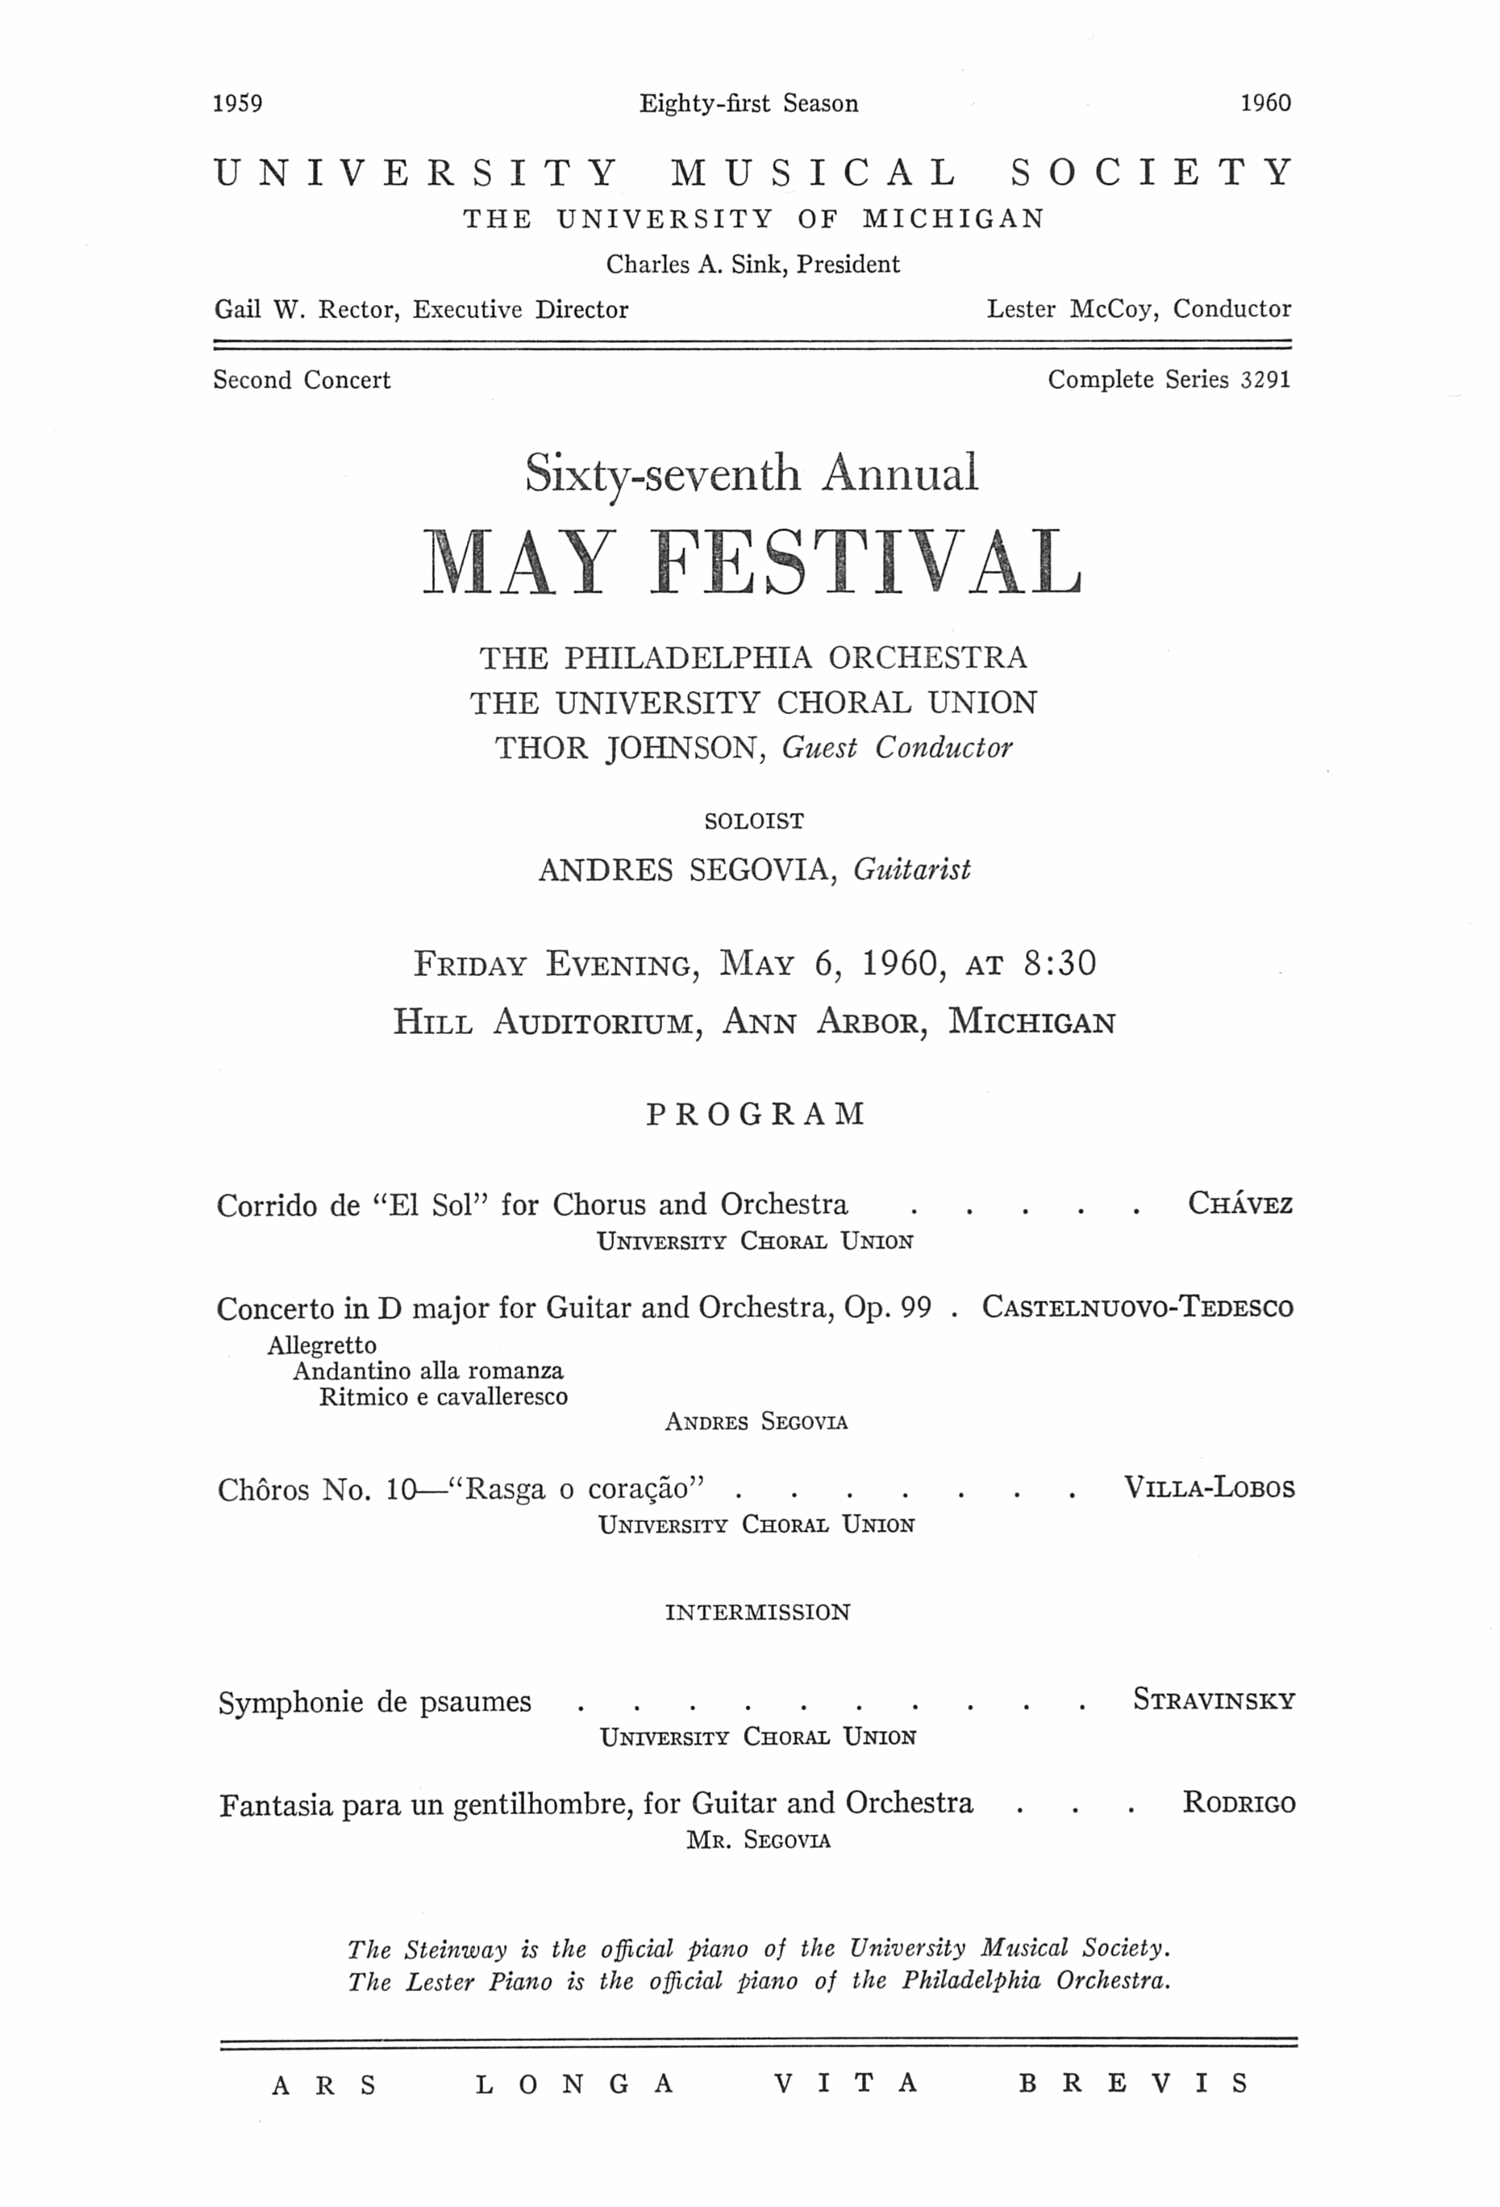 UMS Concert Program, May 6, 1960: Sixty-seventh Annual May Festival -- The Philadelphia Orchestra image